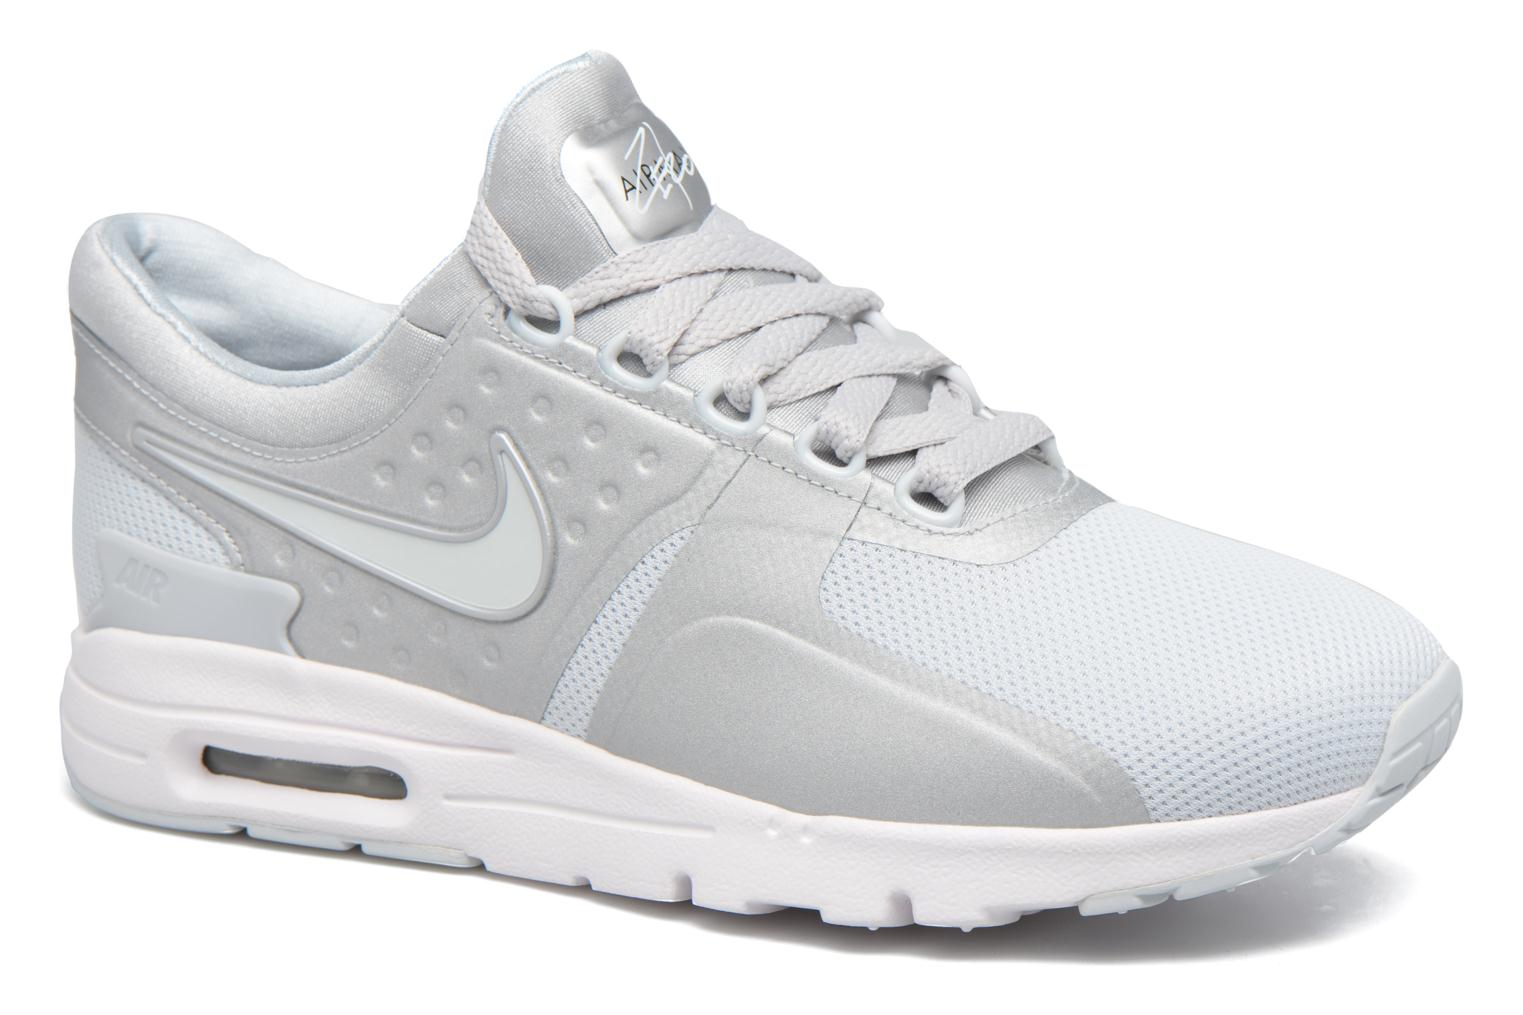 W Air Max Zero PURE PLATINUM/PURE PLATINUM